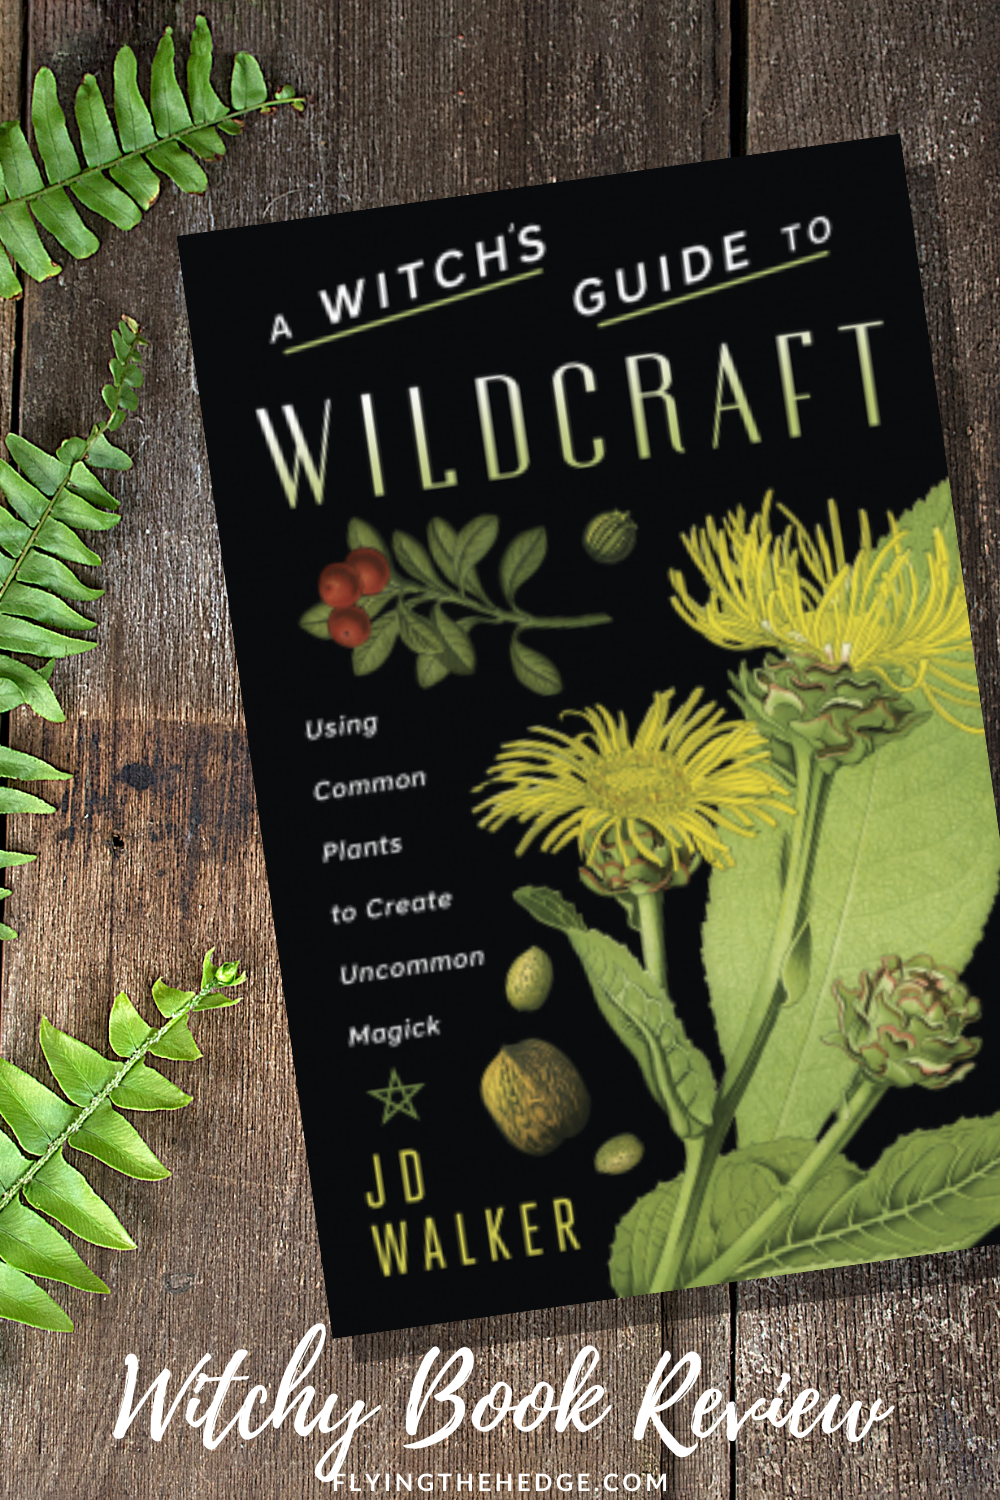 herb, wildcrafting, herb magic, green witch, green witchcraft, kitchen witch, kitchen witchcraft, book review, witchy, witchcraft, witch, occult, hedgewitch, magick, magic, ritual, spell, witchery